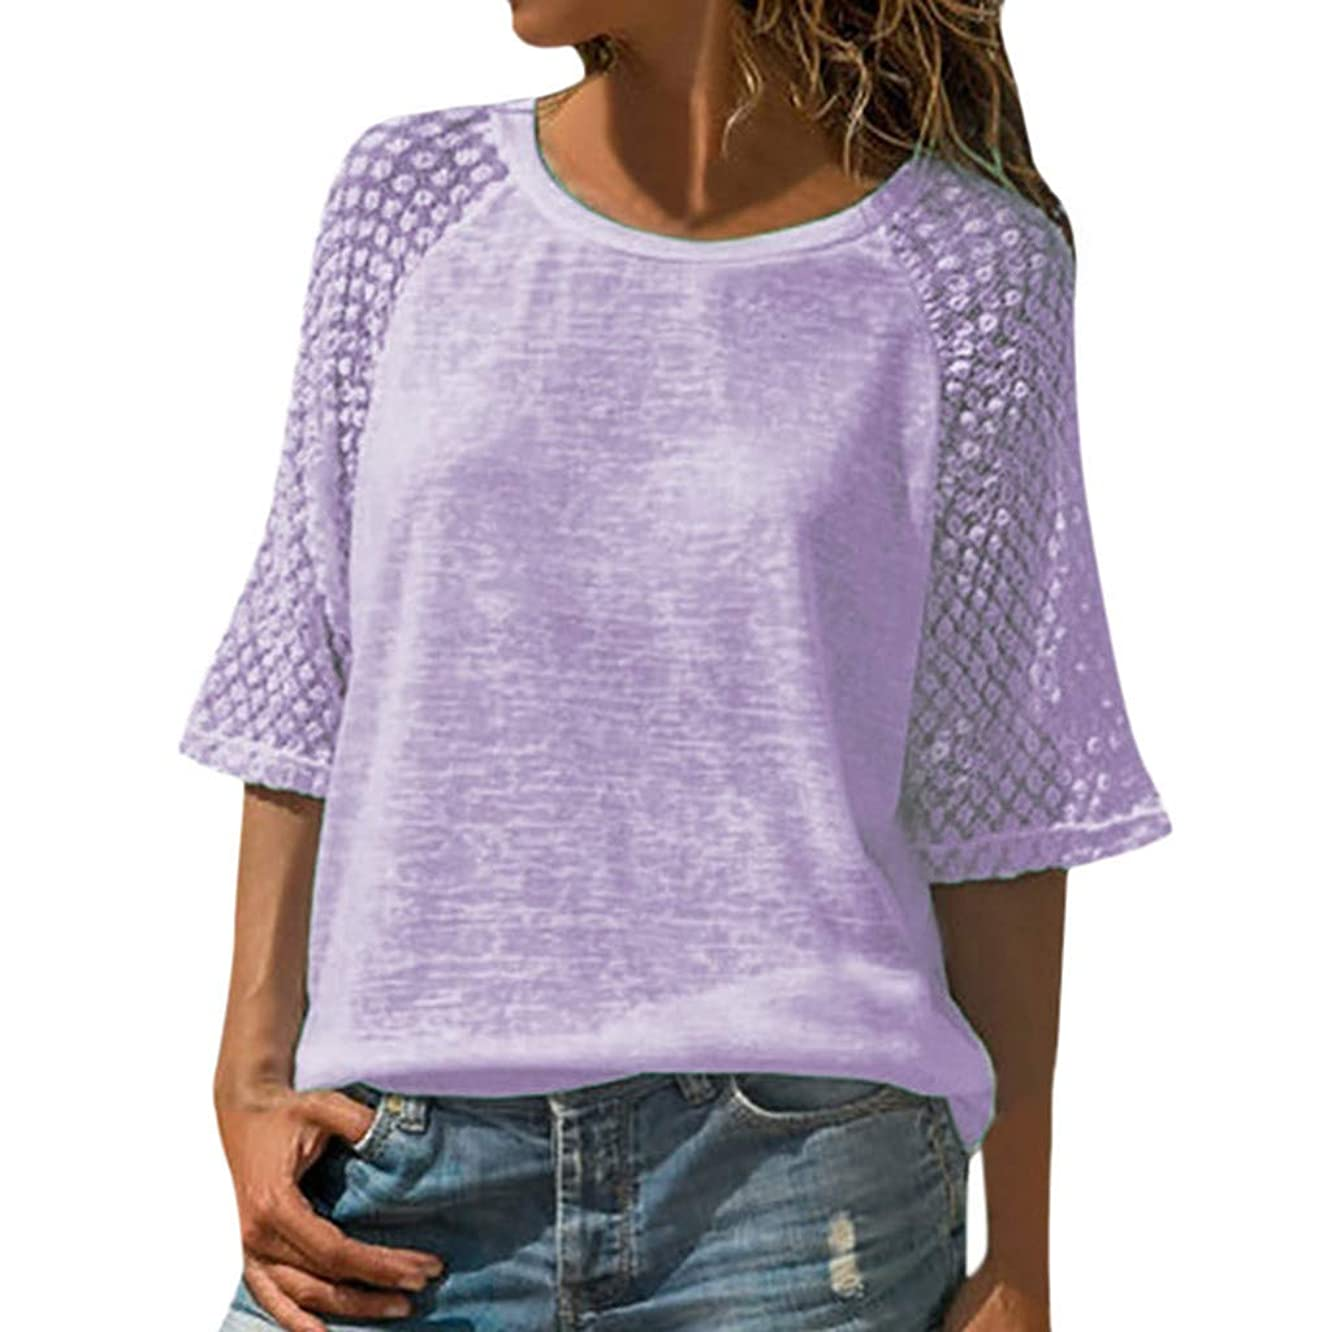 NIKAIRALEY T-Shirt Women's Round Neck Mesh Lace Stitching 3/4 Sleeve Cropped Blouse Shirts Summer Loose Casual Solid Top Tees